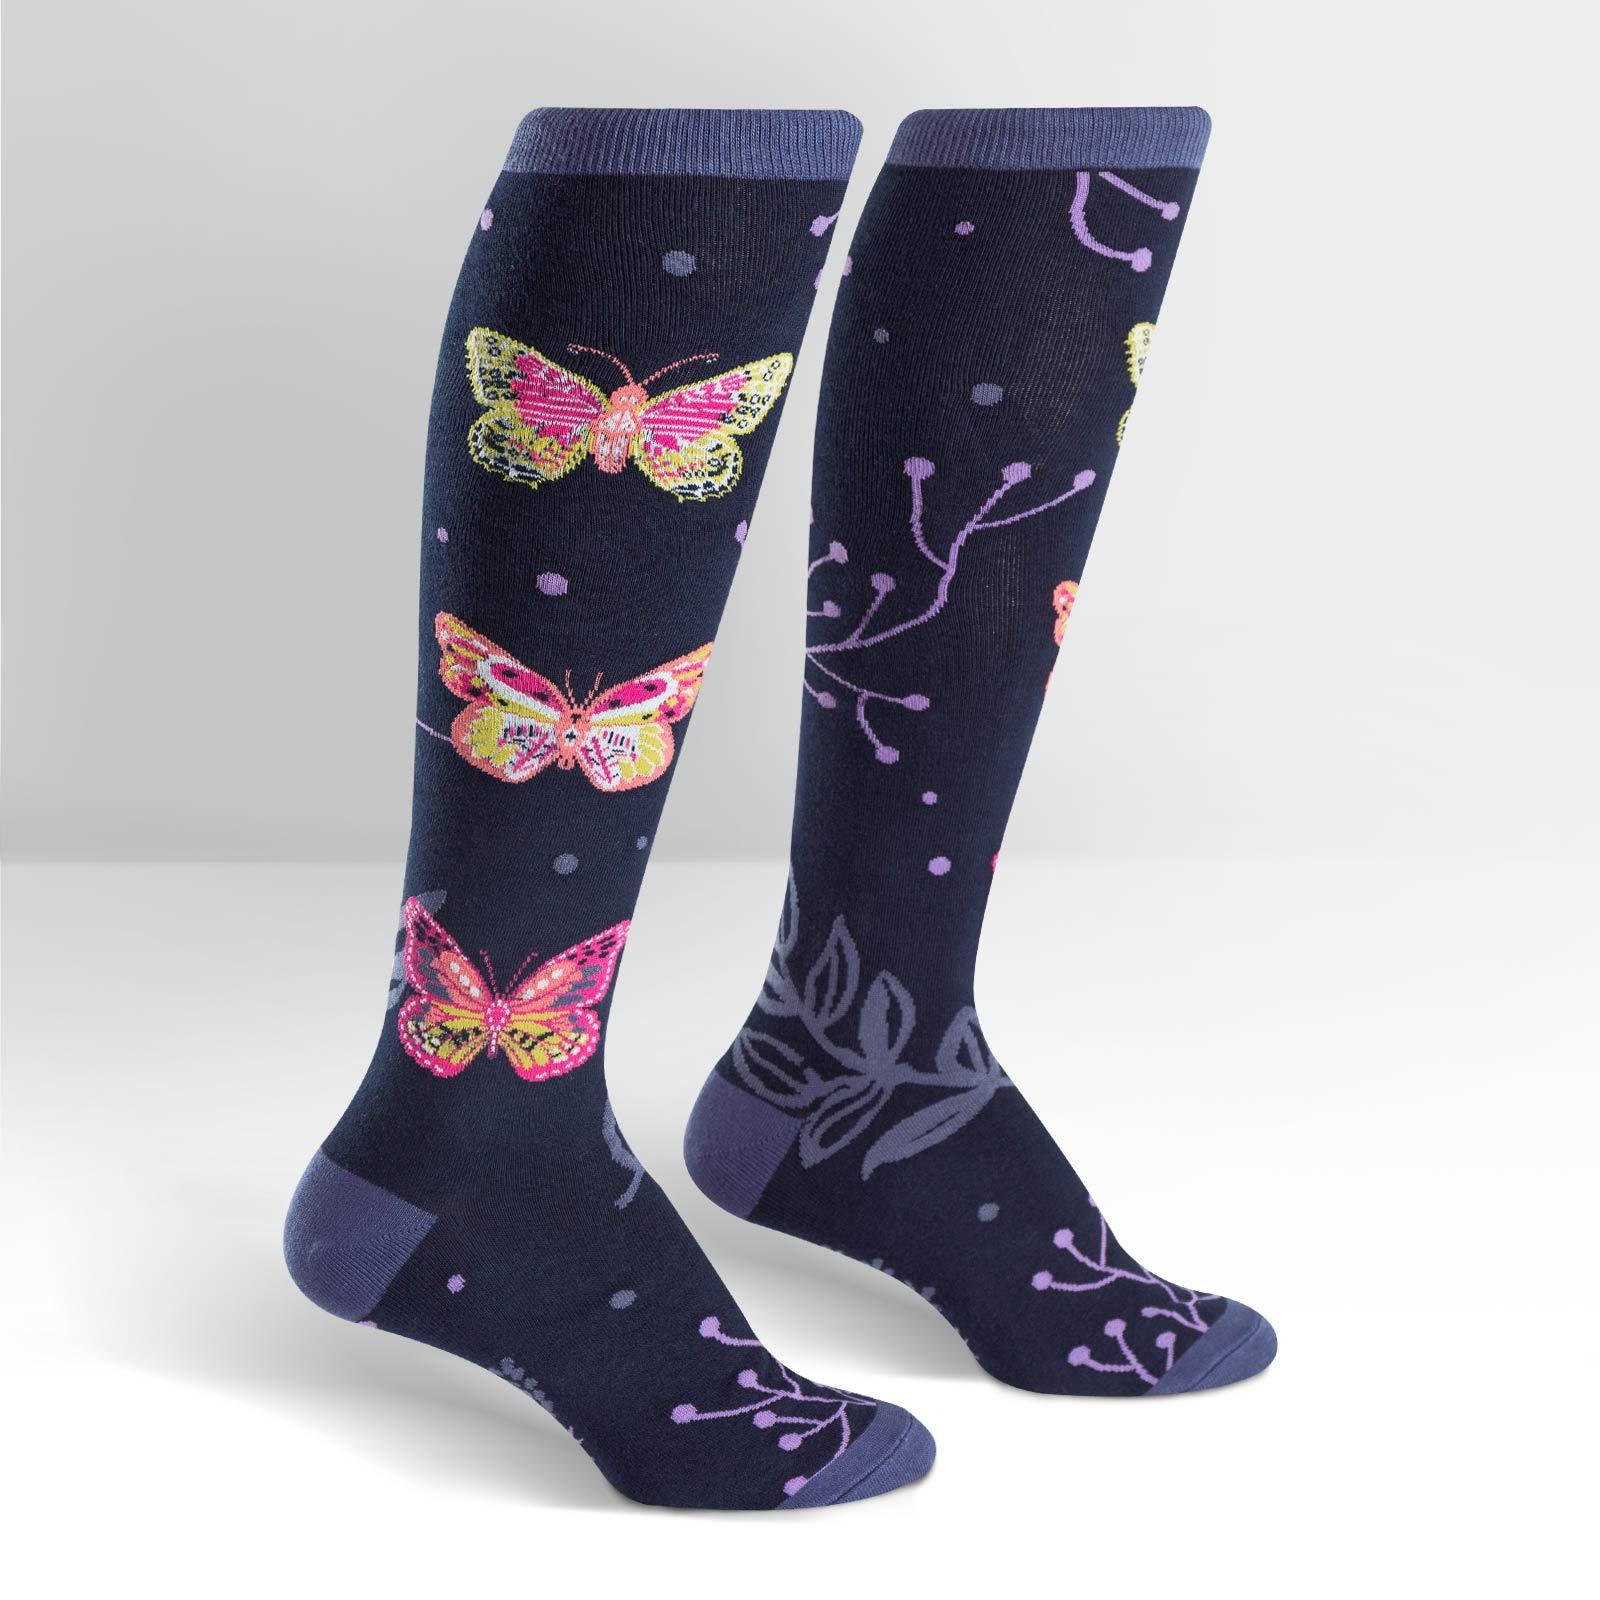 Sock It To Me Madame Butterfly Knee High Socks